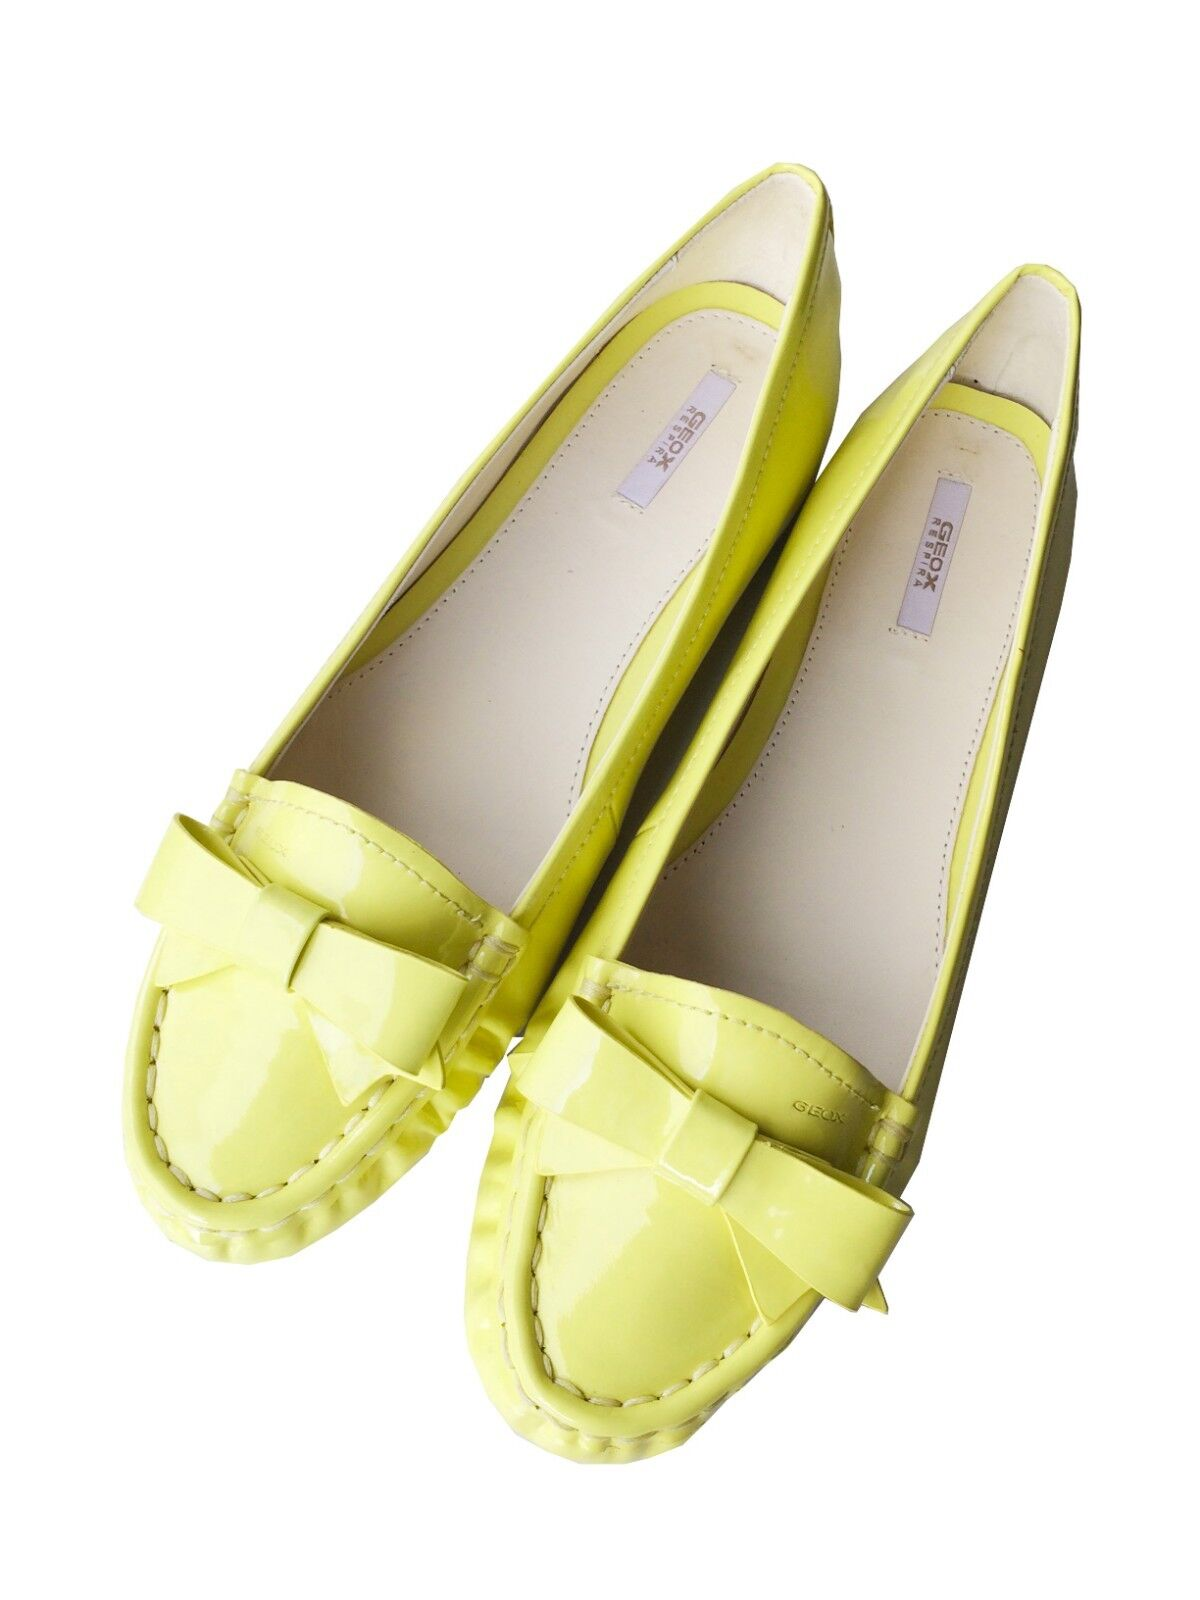 GEOX YELLOW woman flats LOAFERS real patent leather, EU 39.5, NEW, never worn